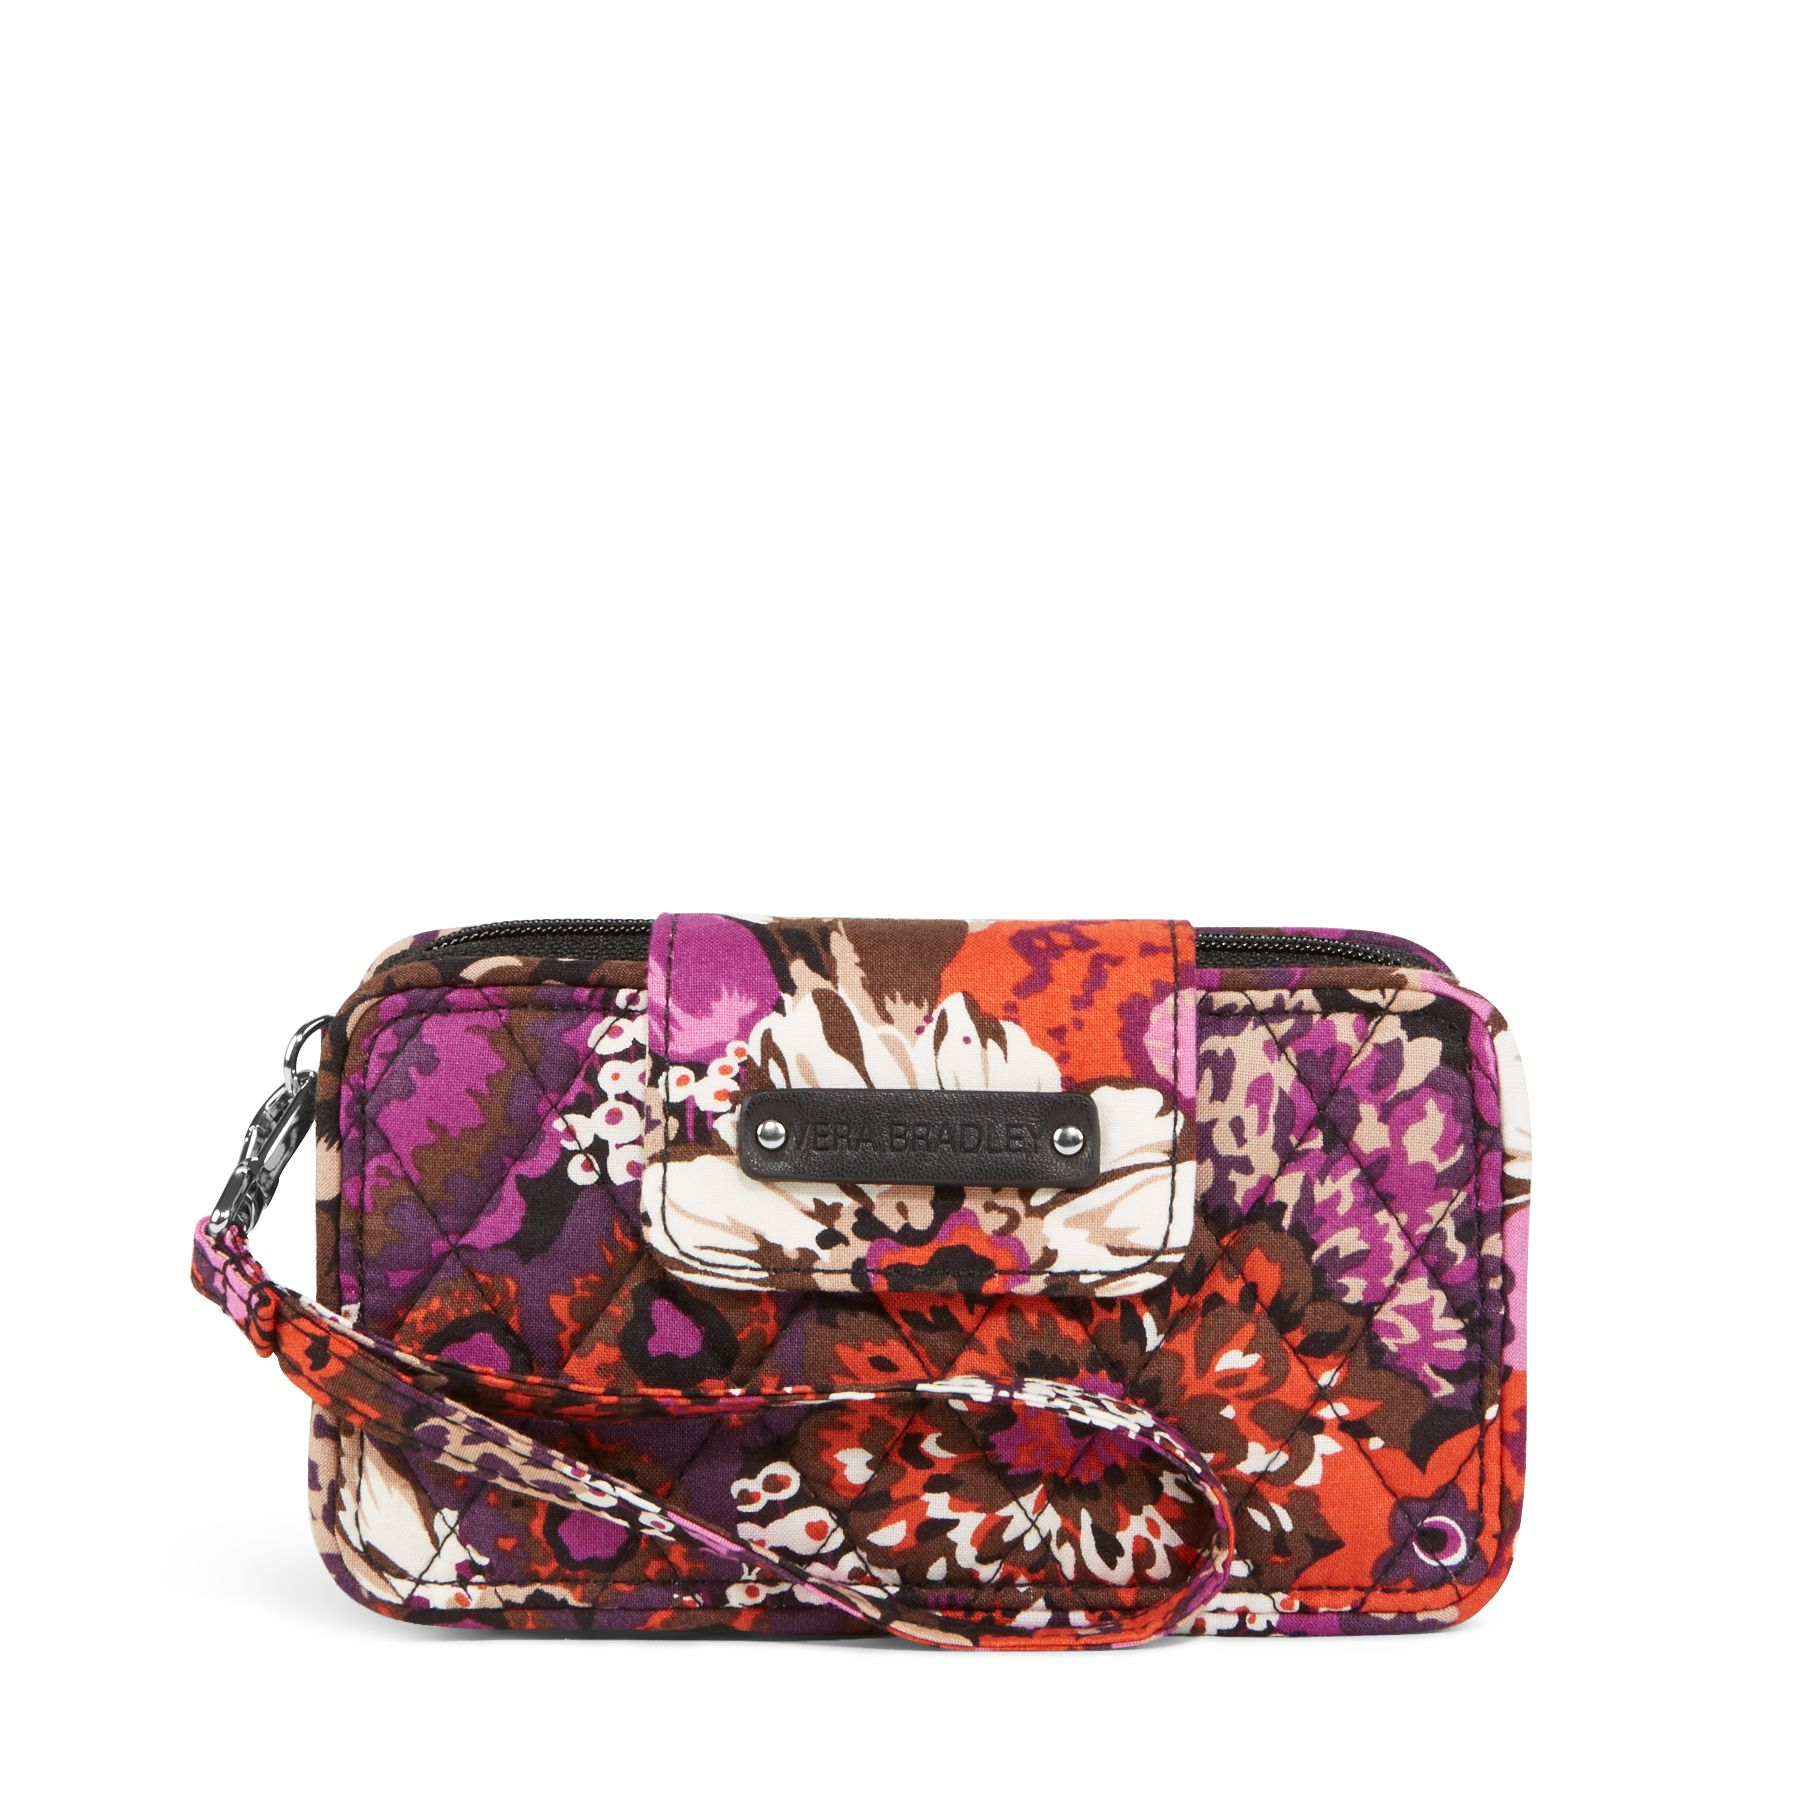 Vera Bradley Smartphone Wristlet for iPhone 6 in Rosewood